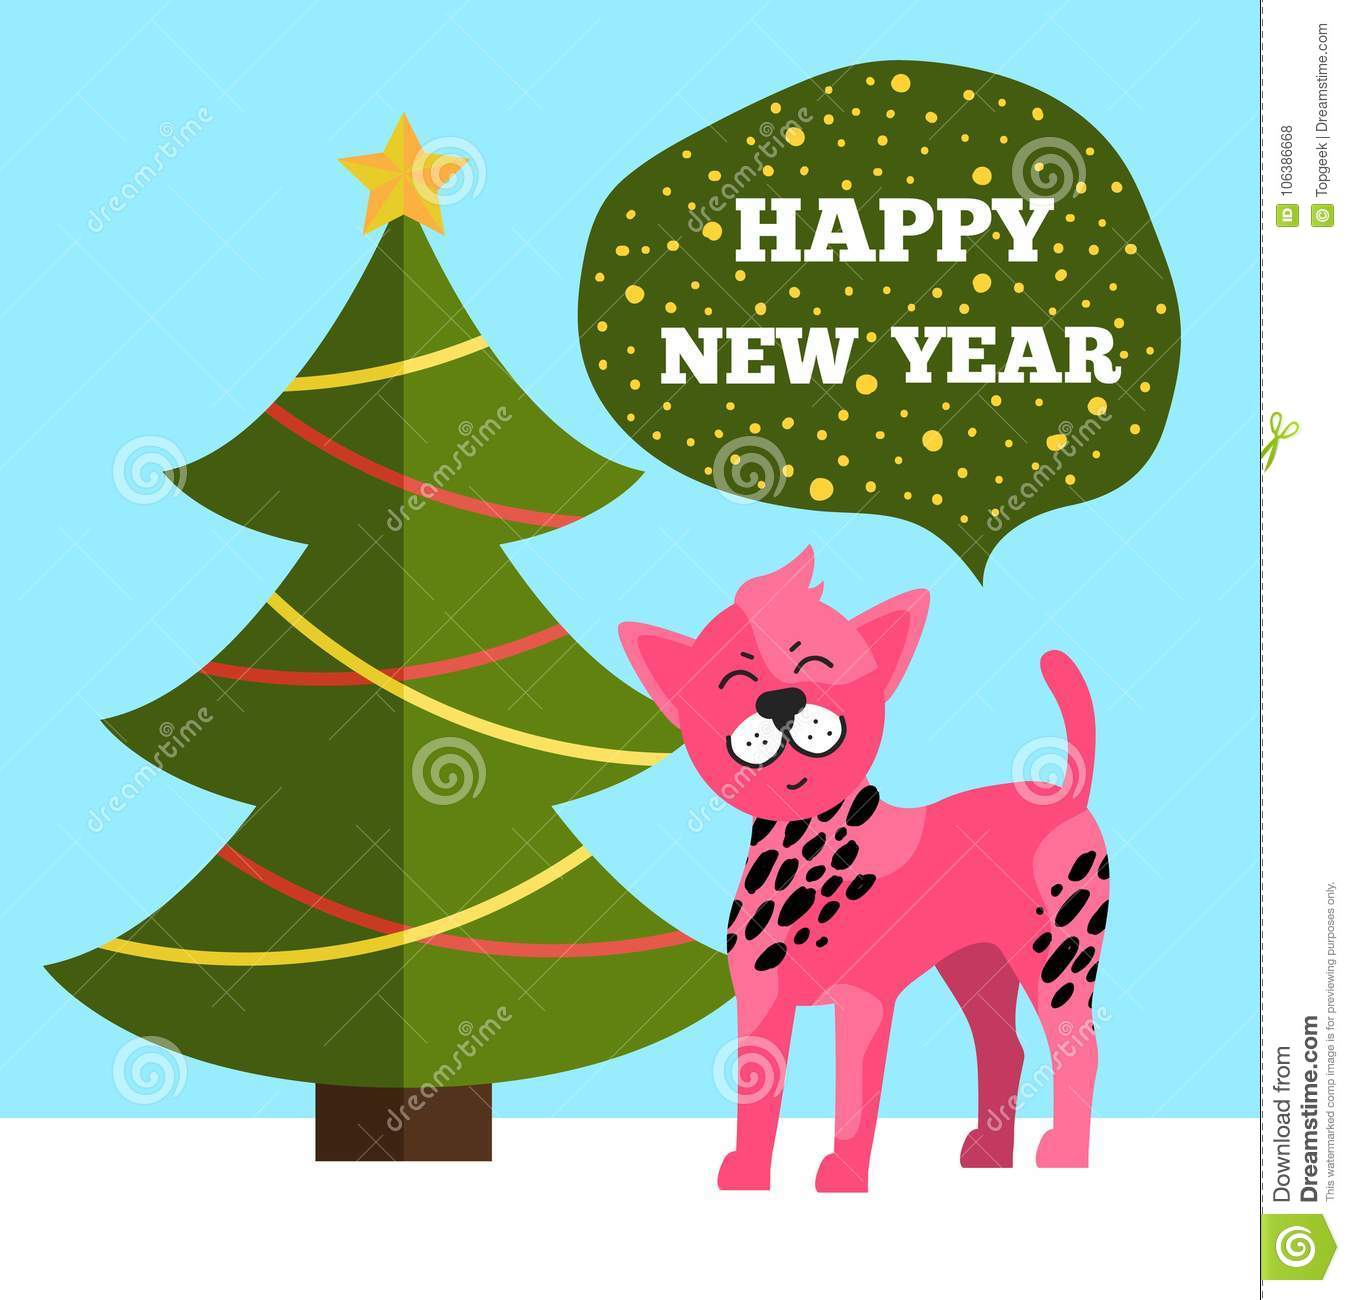 Happy New Year Greetings Poster Christmas Tree Dog Stock Vector ...